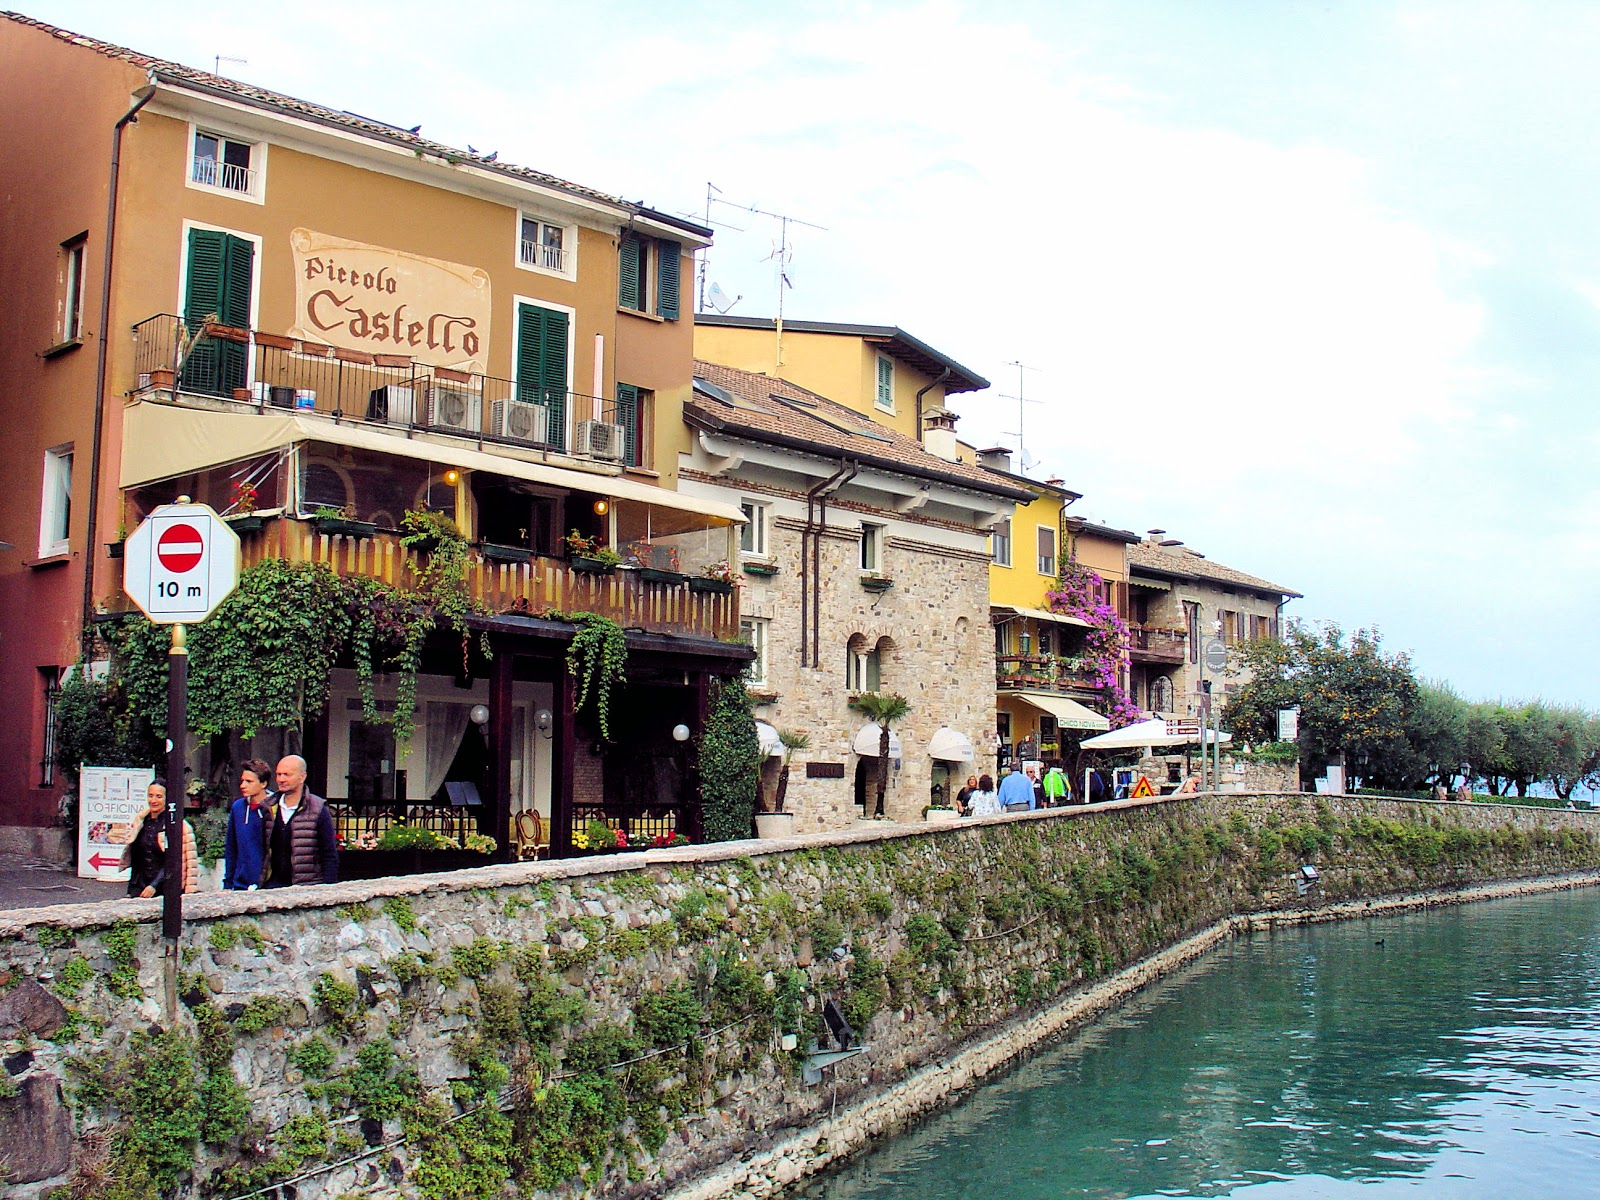 View along Sirmione in Lake Garda, Italy. All photography is the property of EuroTravelogue™. Unauthorized use is prohibited.